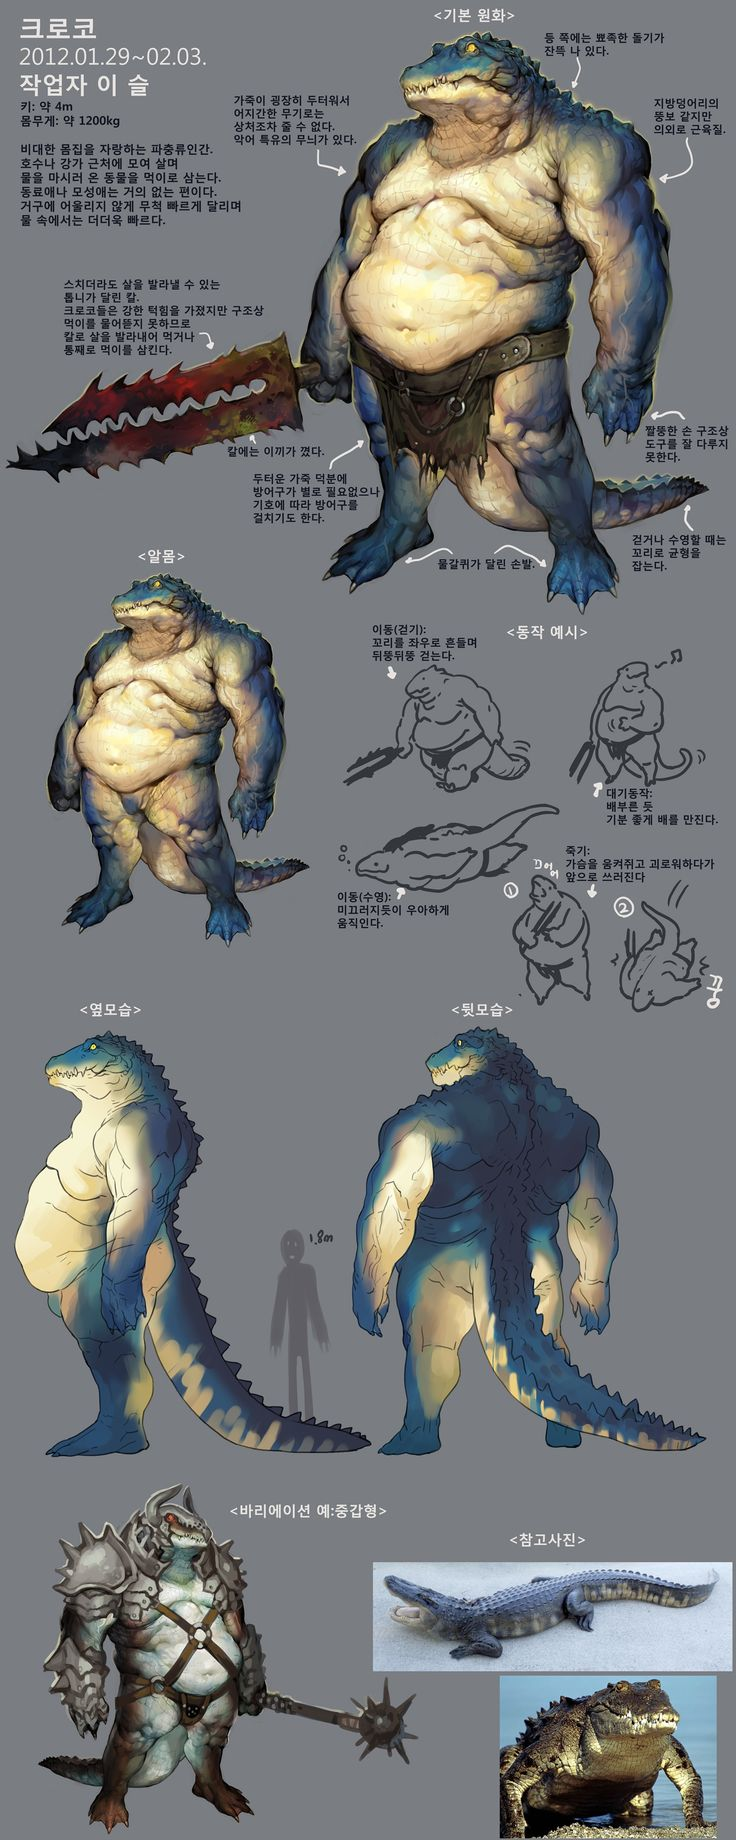 Concept art gives your project direction.